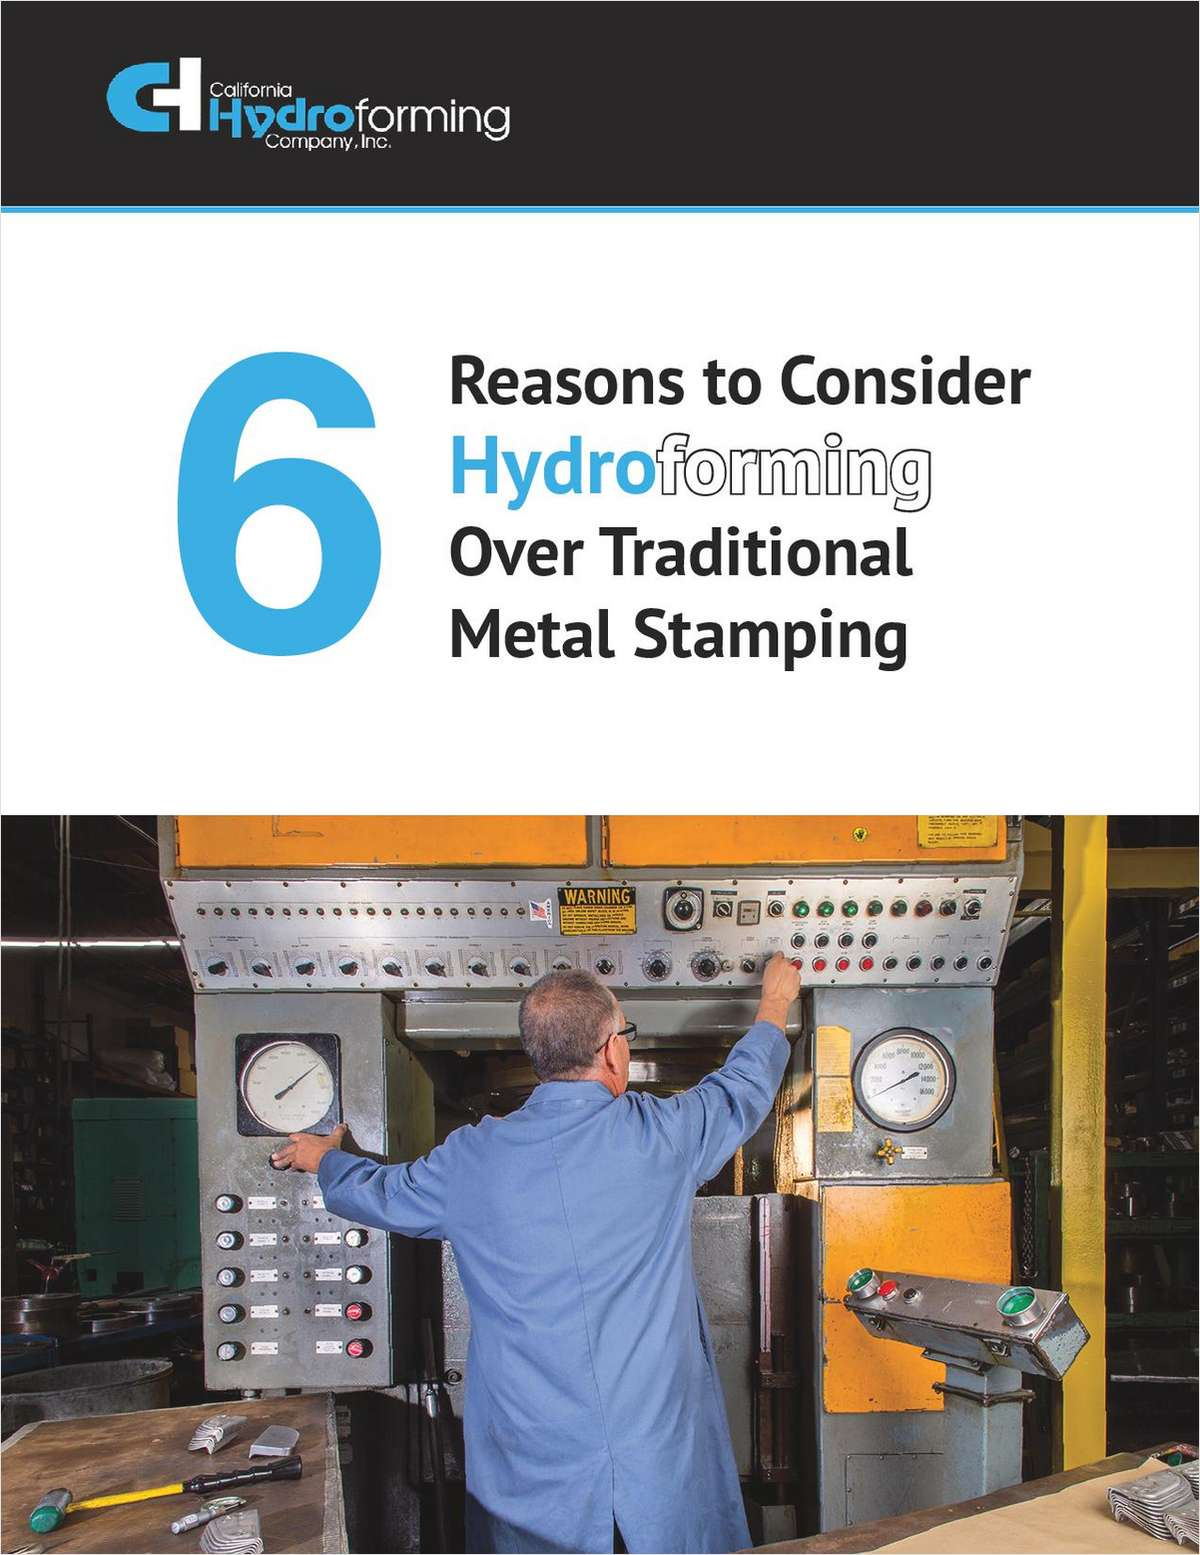 6 Reasons to Consider Hydroforming over Traditional Metal Stamping